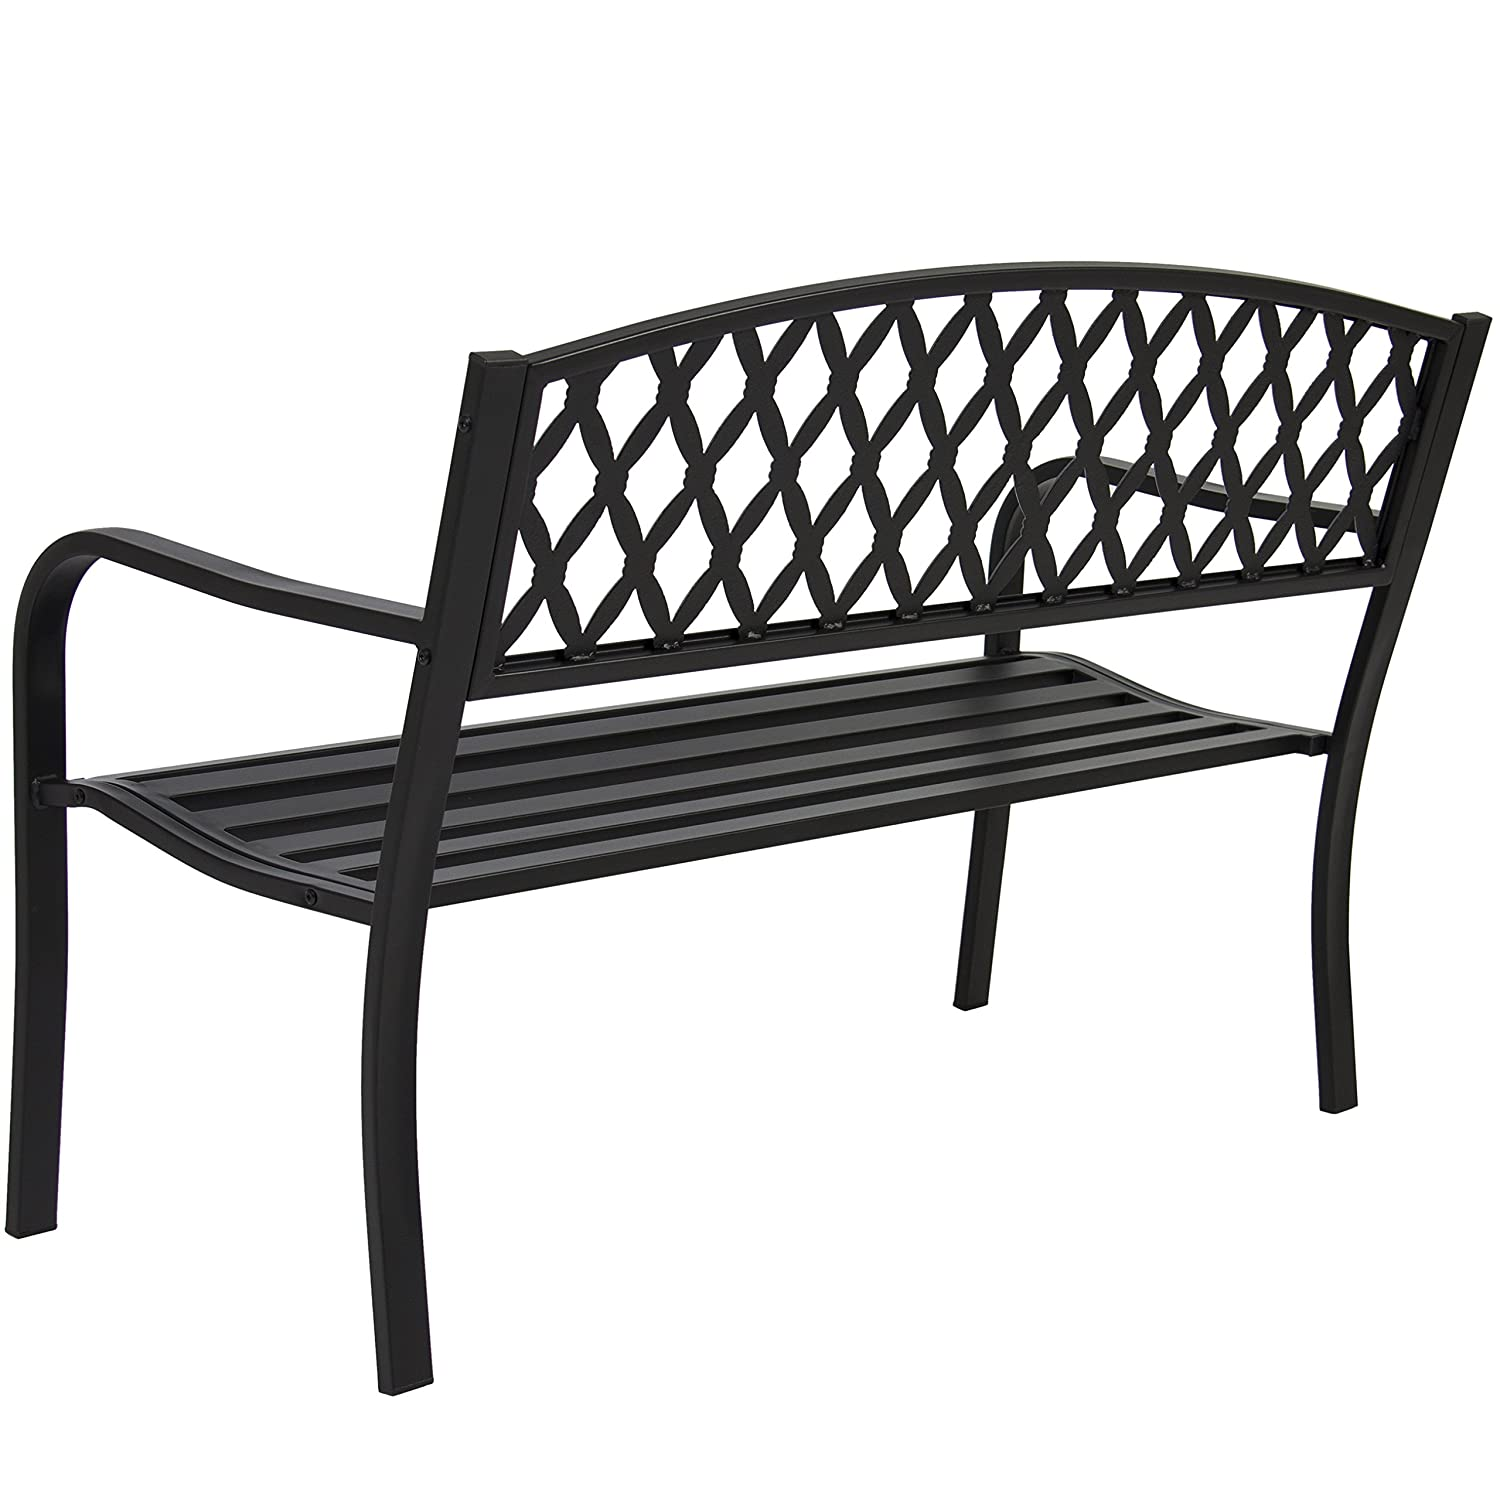 Amazon.com : Best Choice Products 50in Steel Outdoor Patio Garden ...